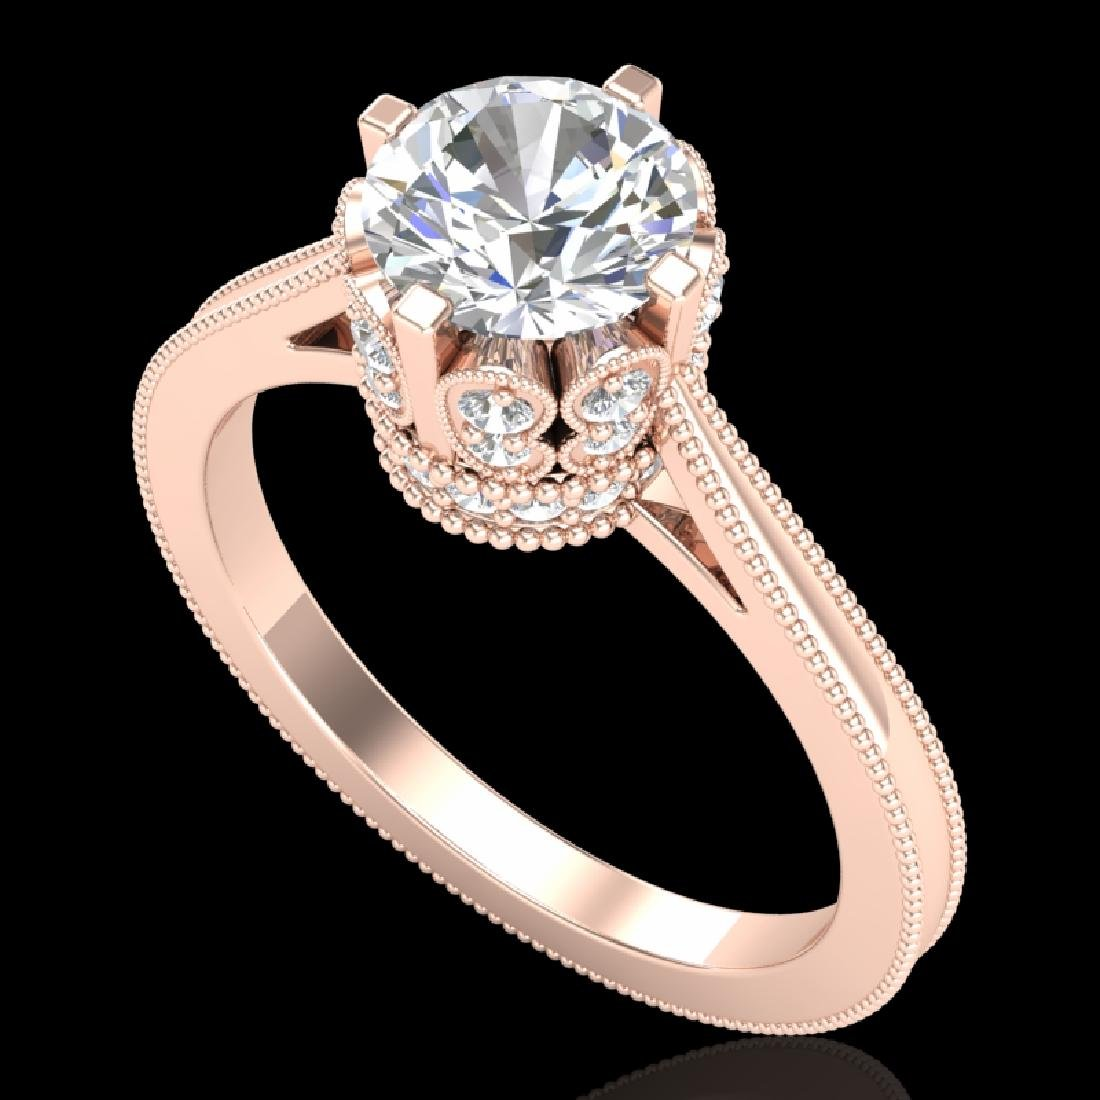 1.5 CTW VS/SI Diamond Art Deco Ring 18K Rose Gold